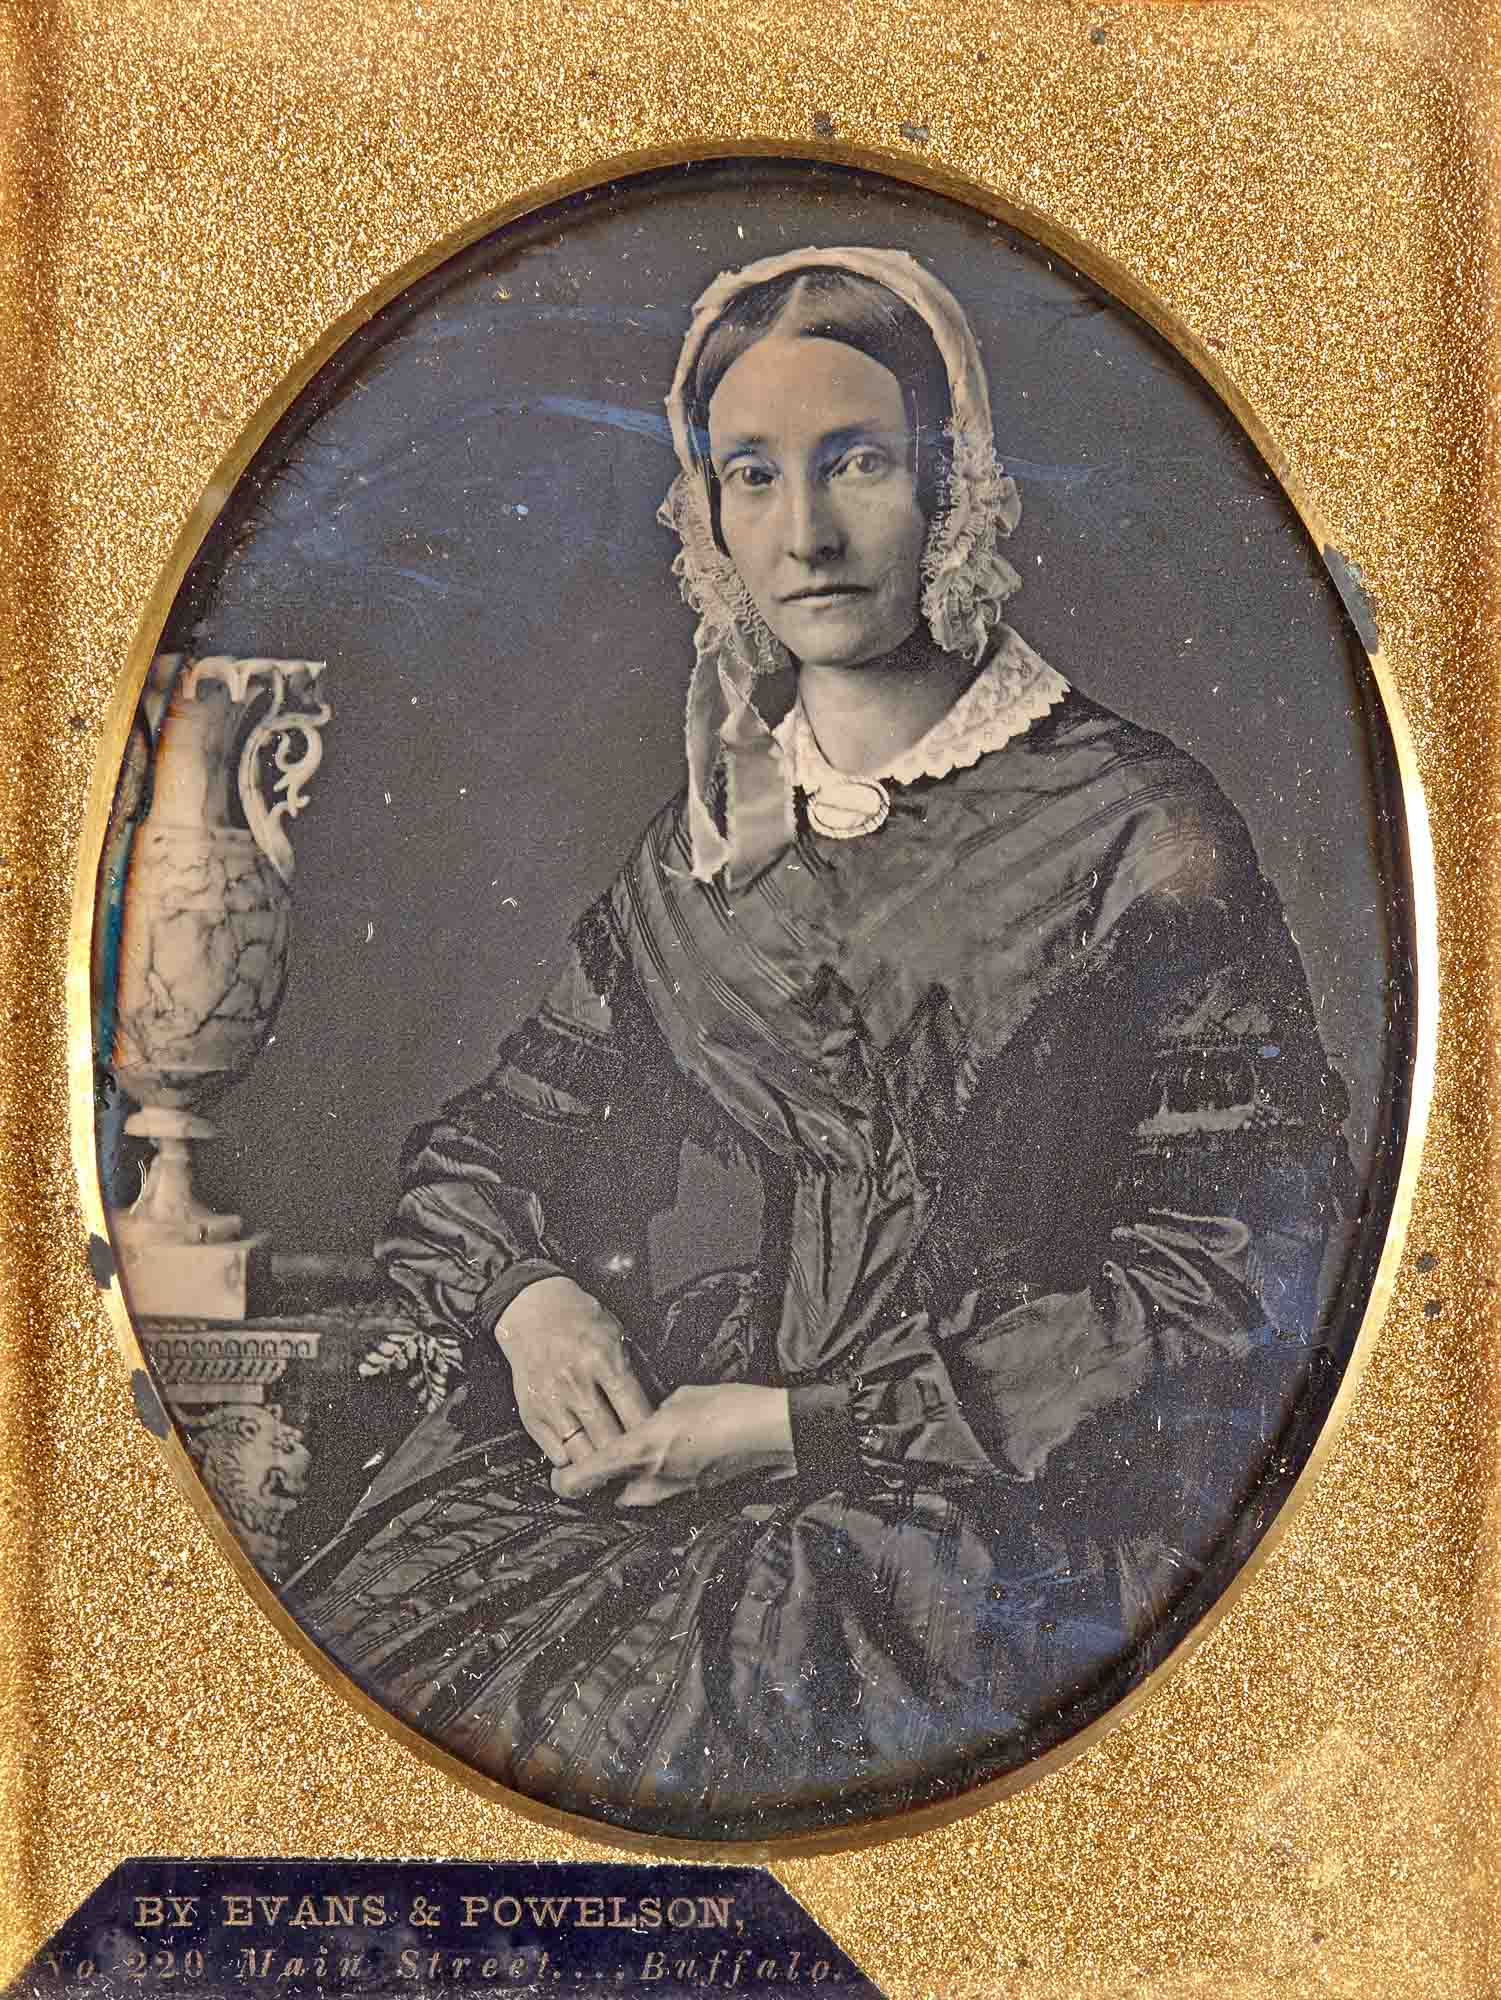 Lot image - [DAGUERREOTYPE]  Quarter-plate portrait daguerreotype of a young woman.